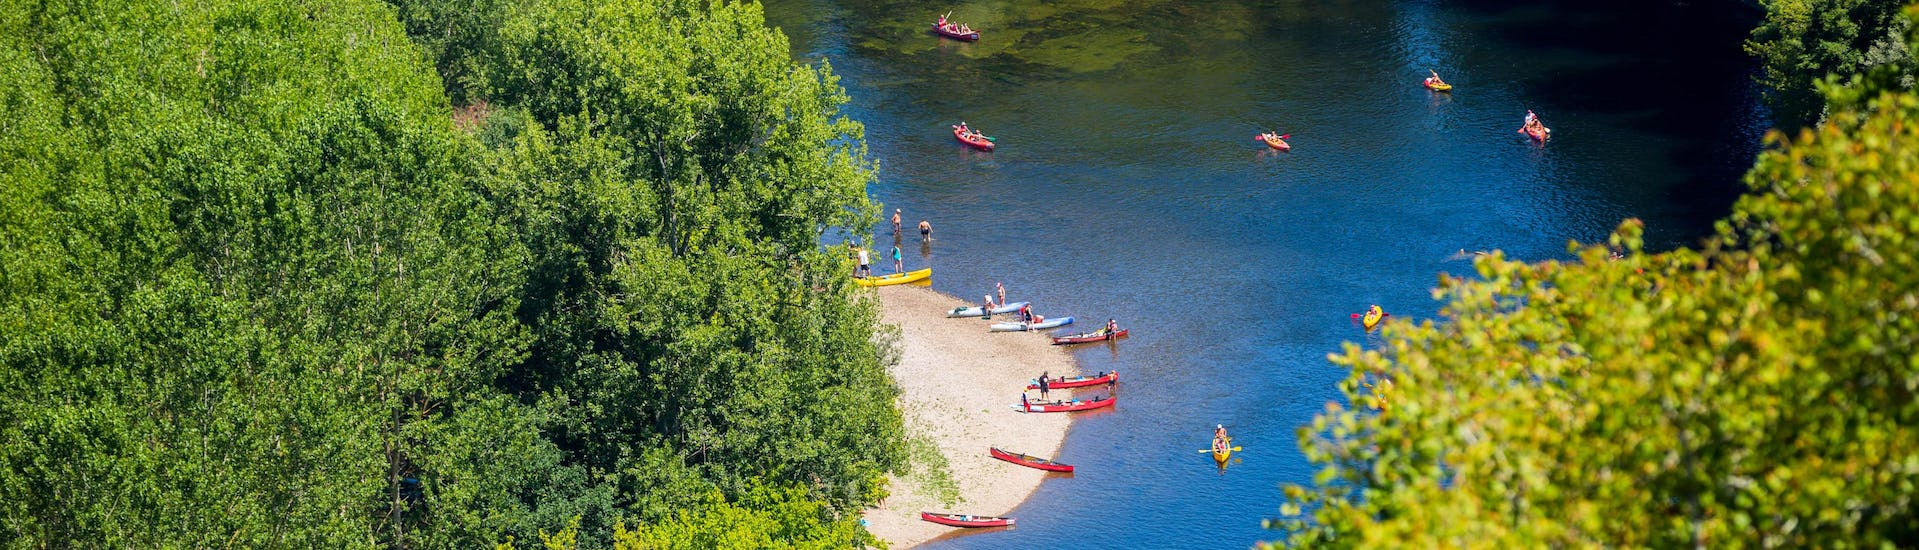 Aerial view of a meander of the Dordogne River near Domme in the Périgord, very popular among canoeing enthusiasts.